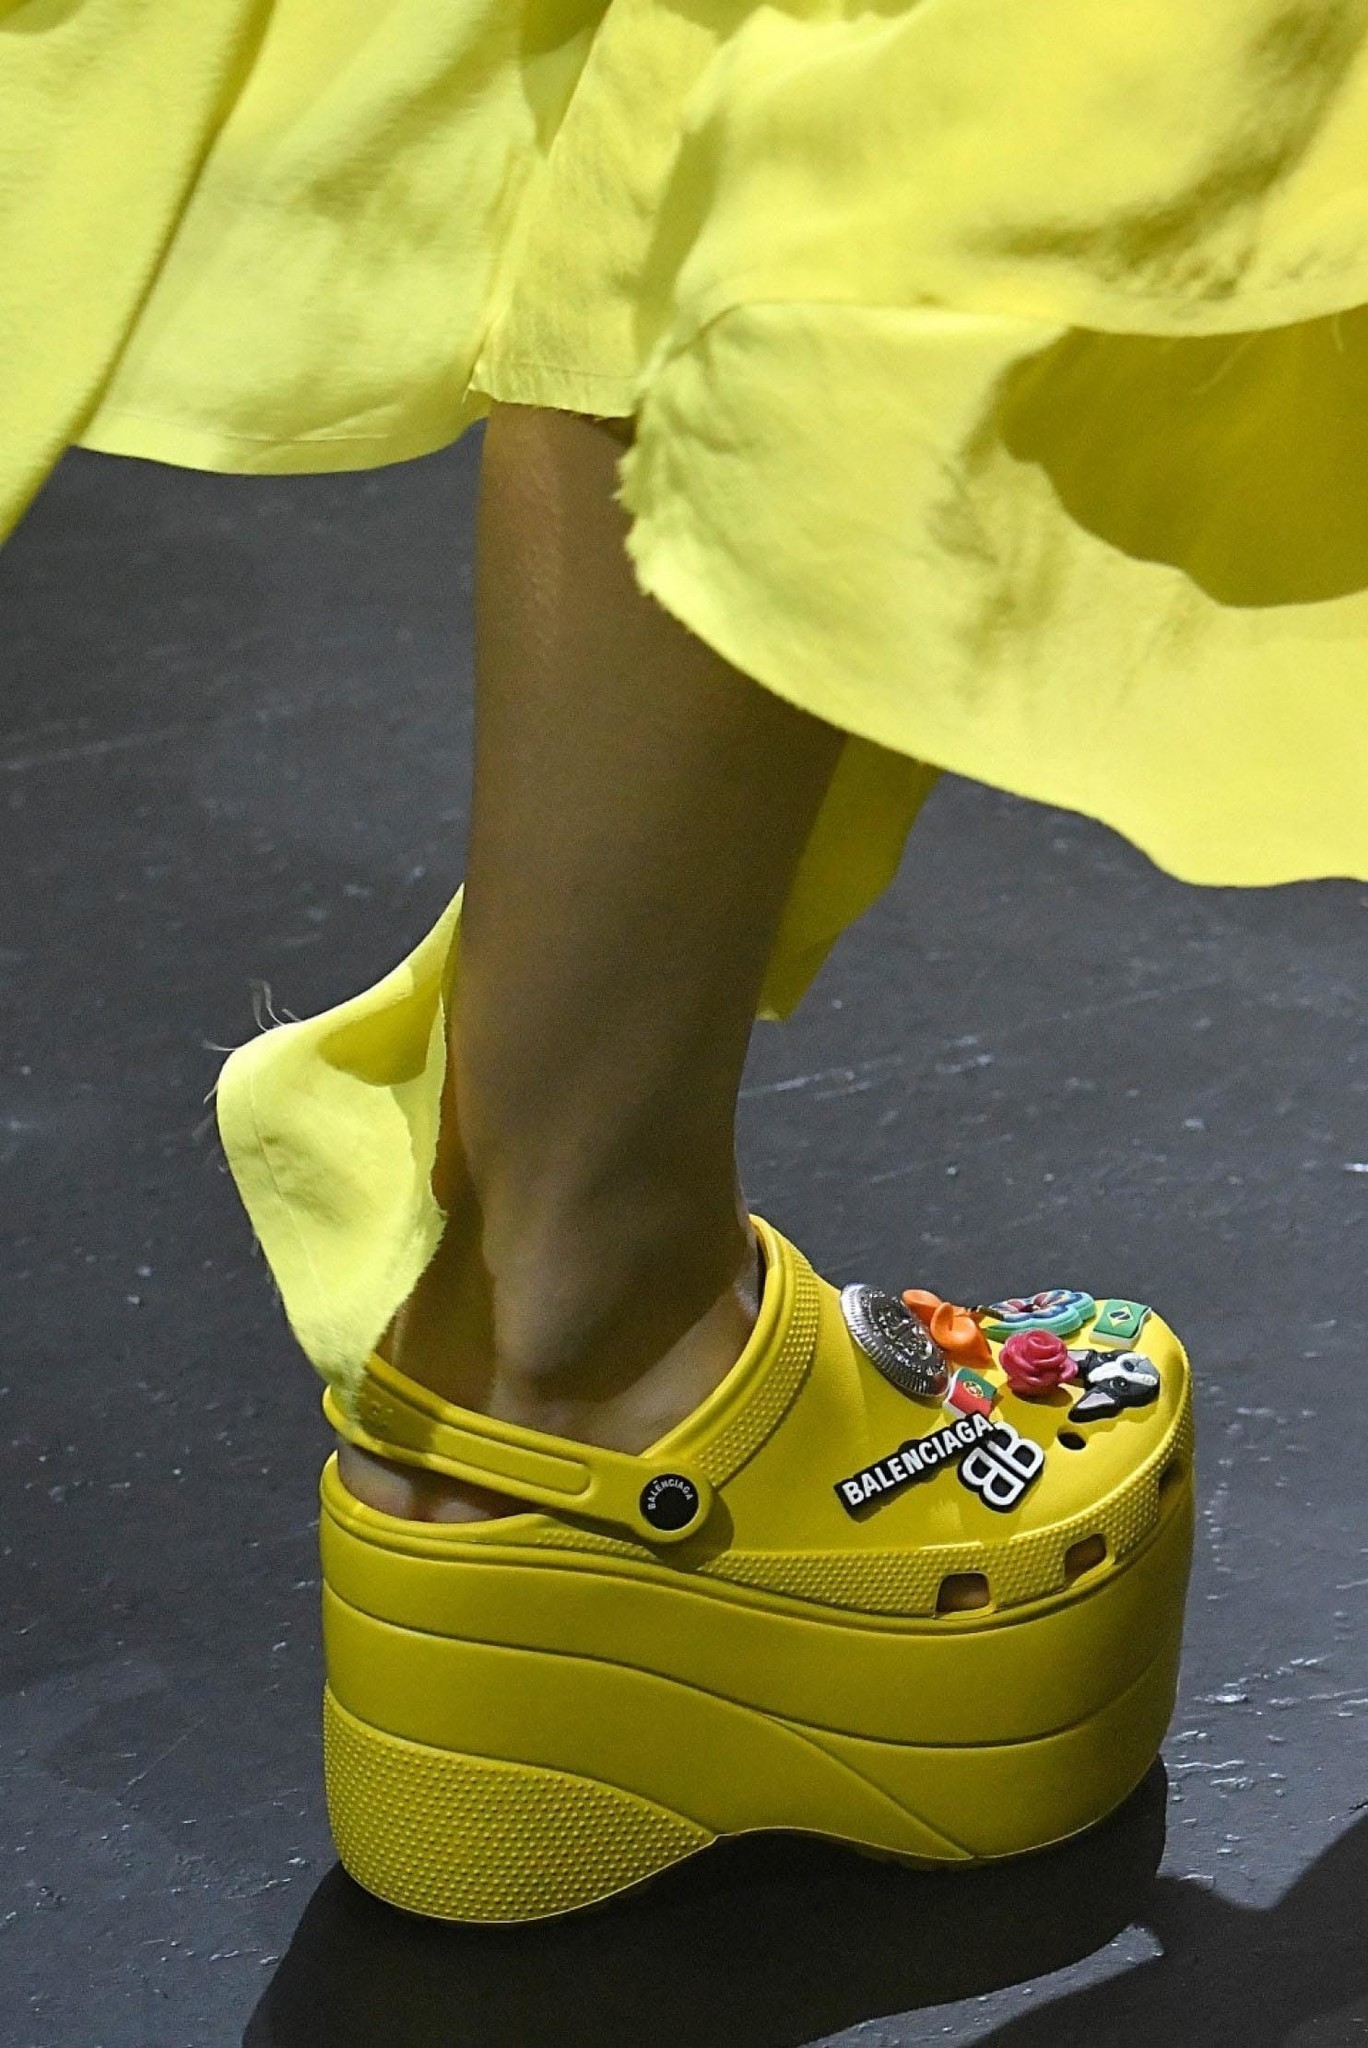 e0709265a5b1ac Platform Crocs and other strange signs of the time in fashion - Chicago  Tribune